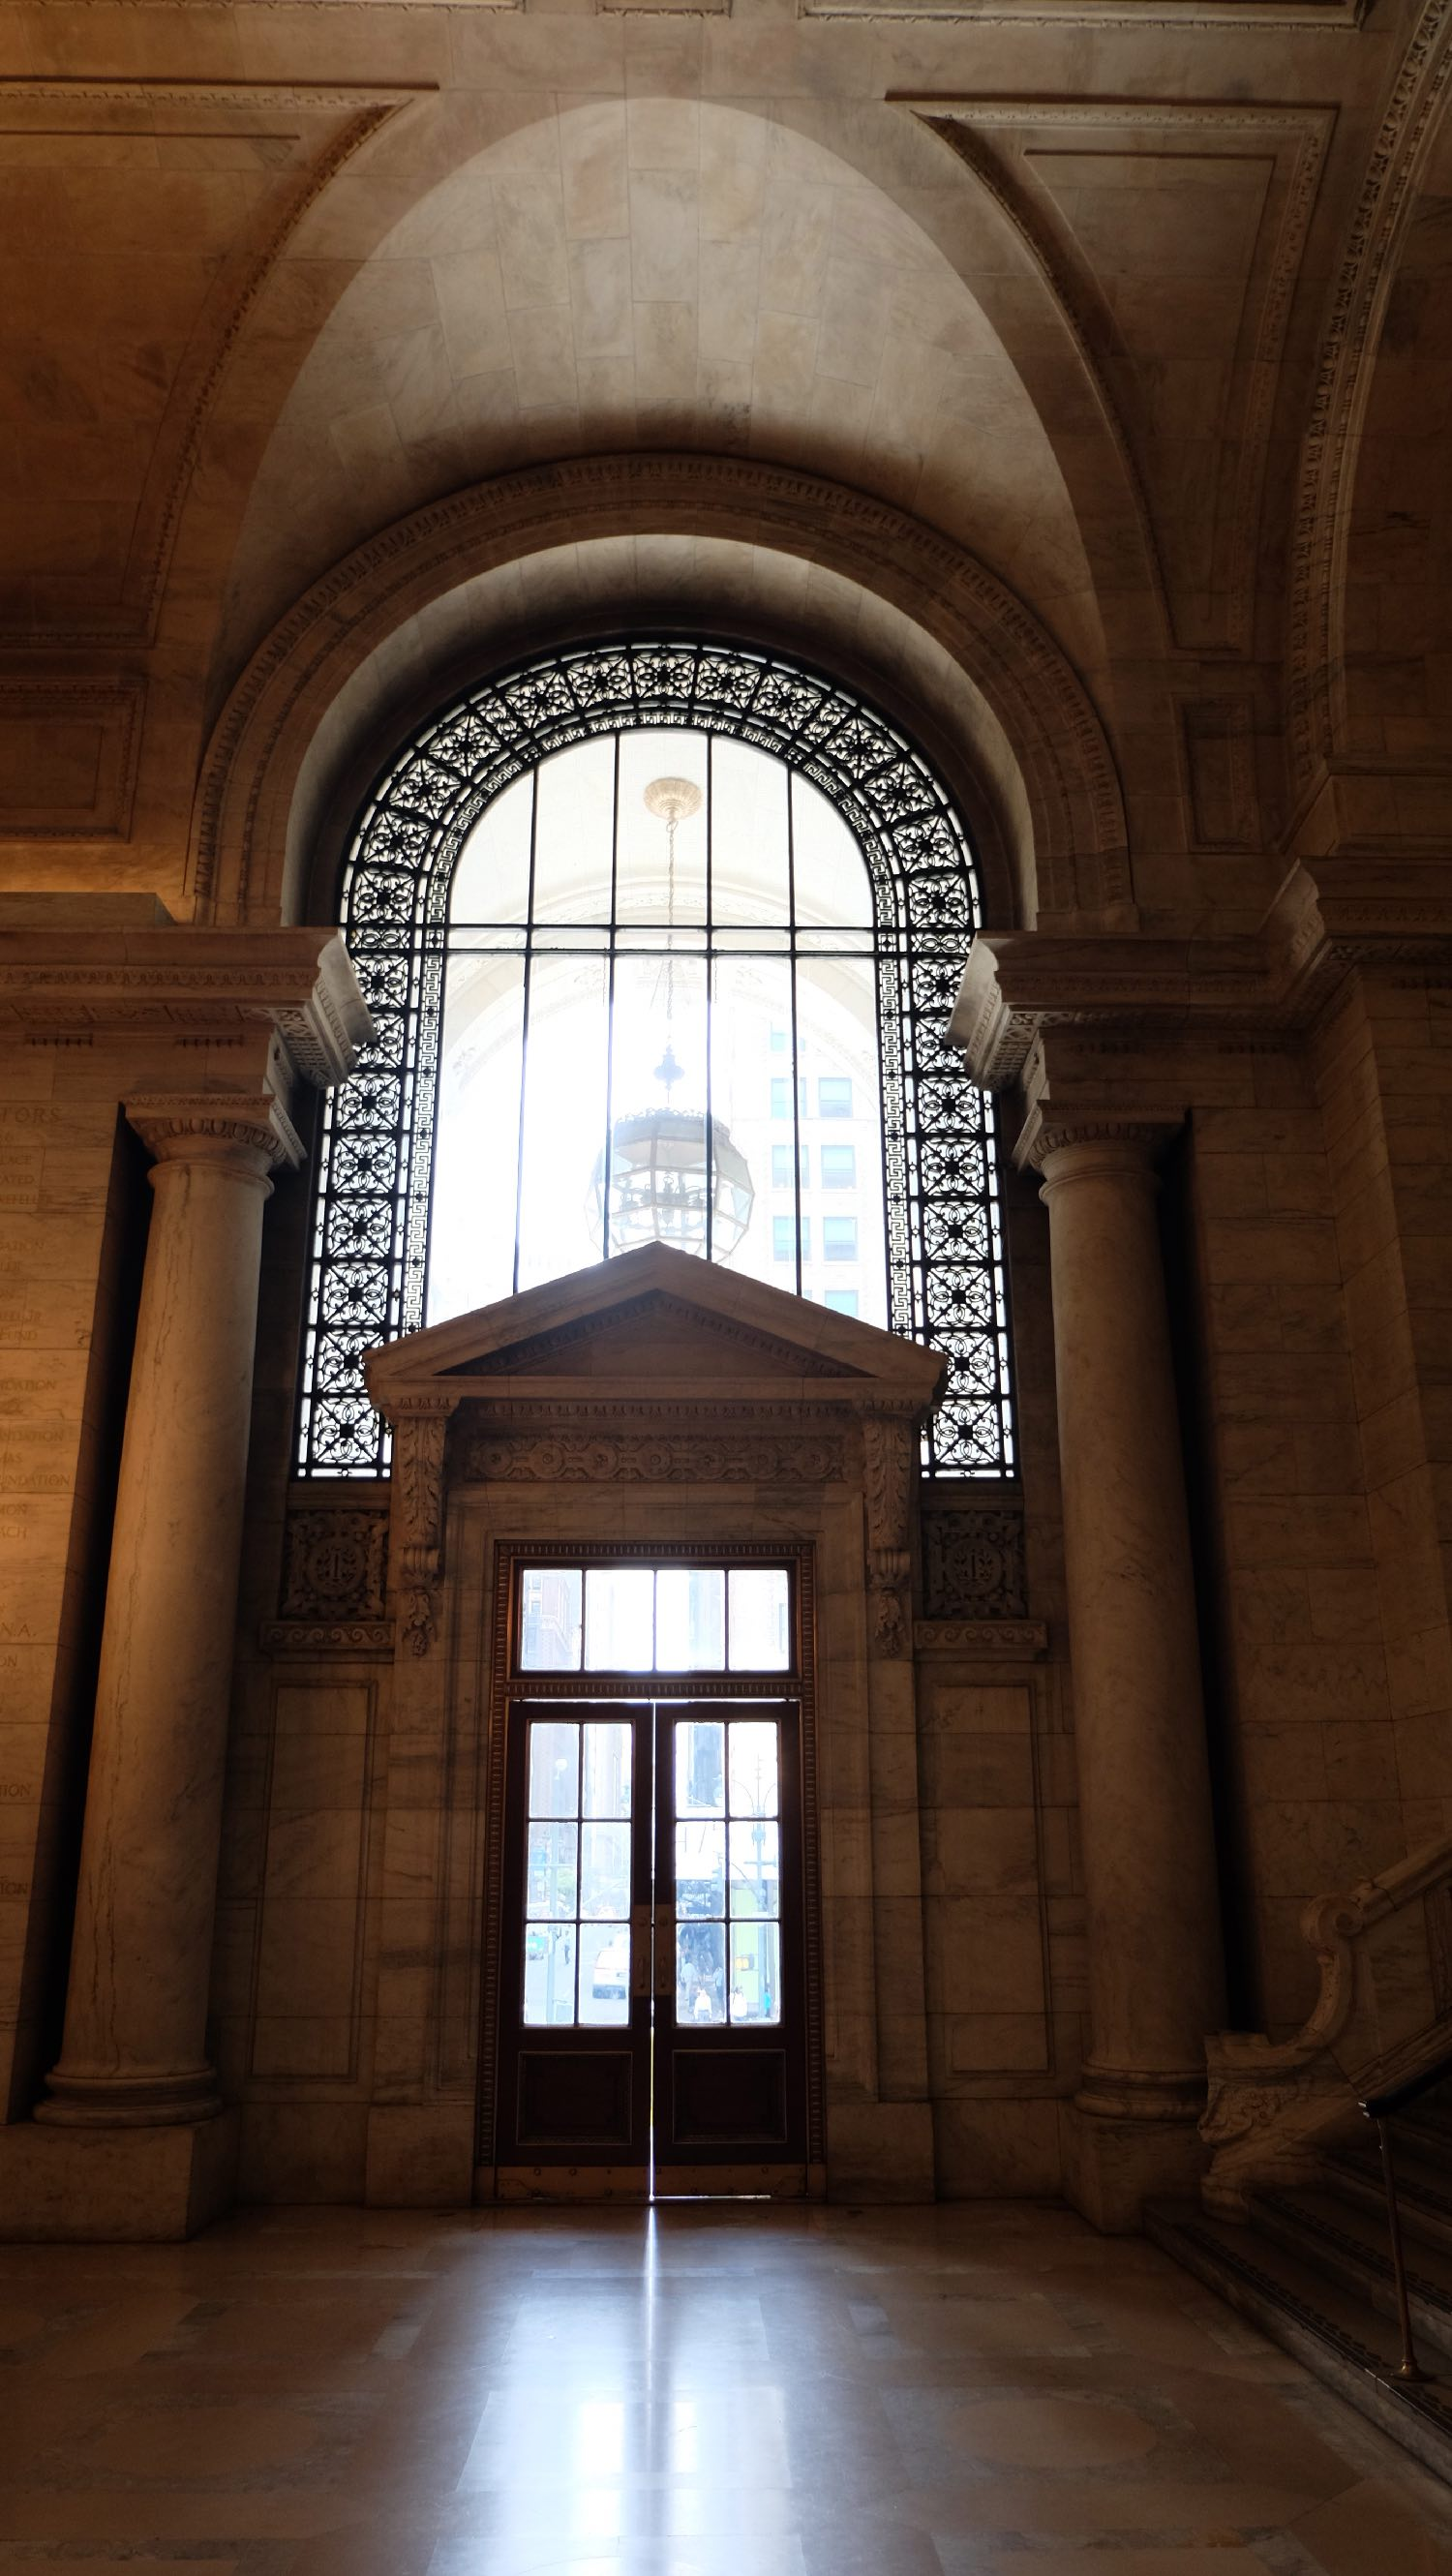 The New York Public Library | Entrance | 19 th century architecture | photo sandrine cohen